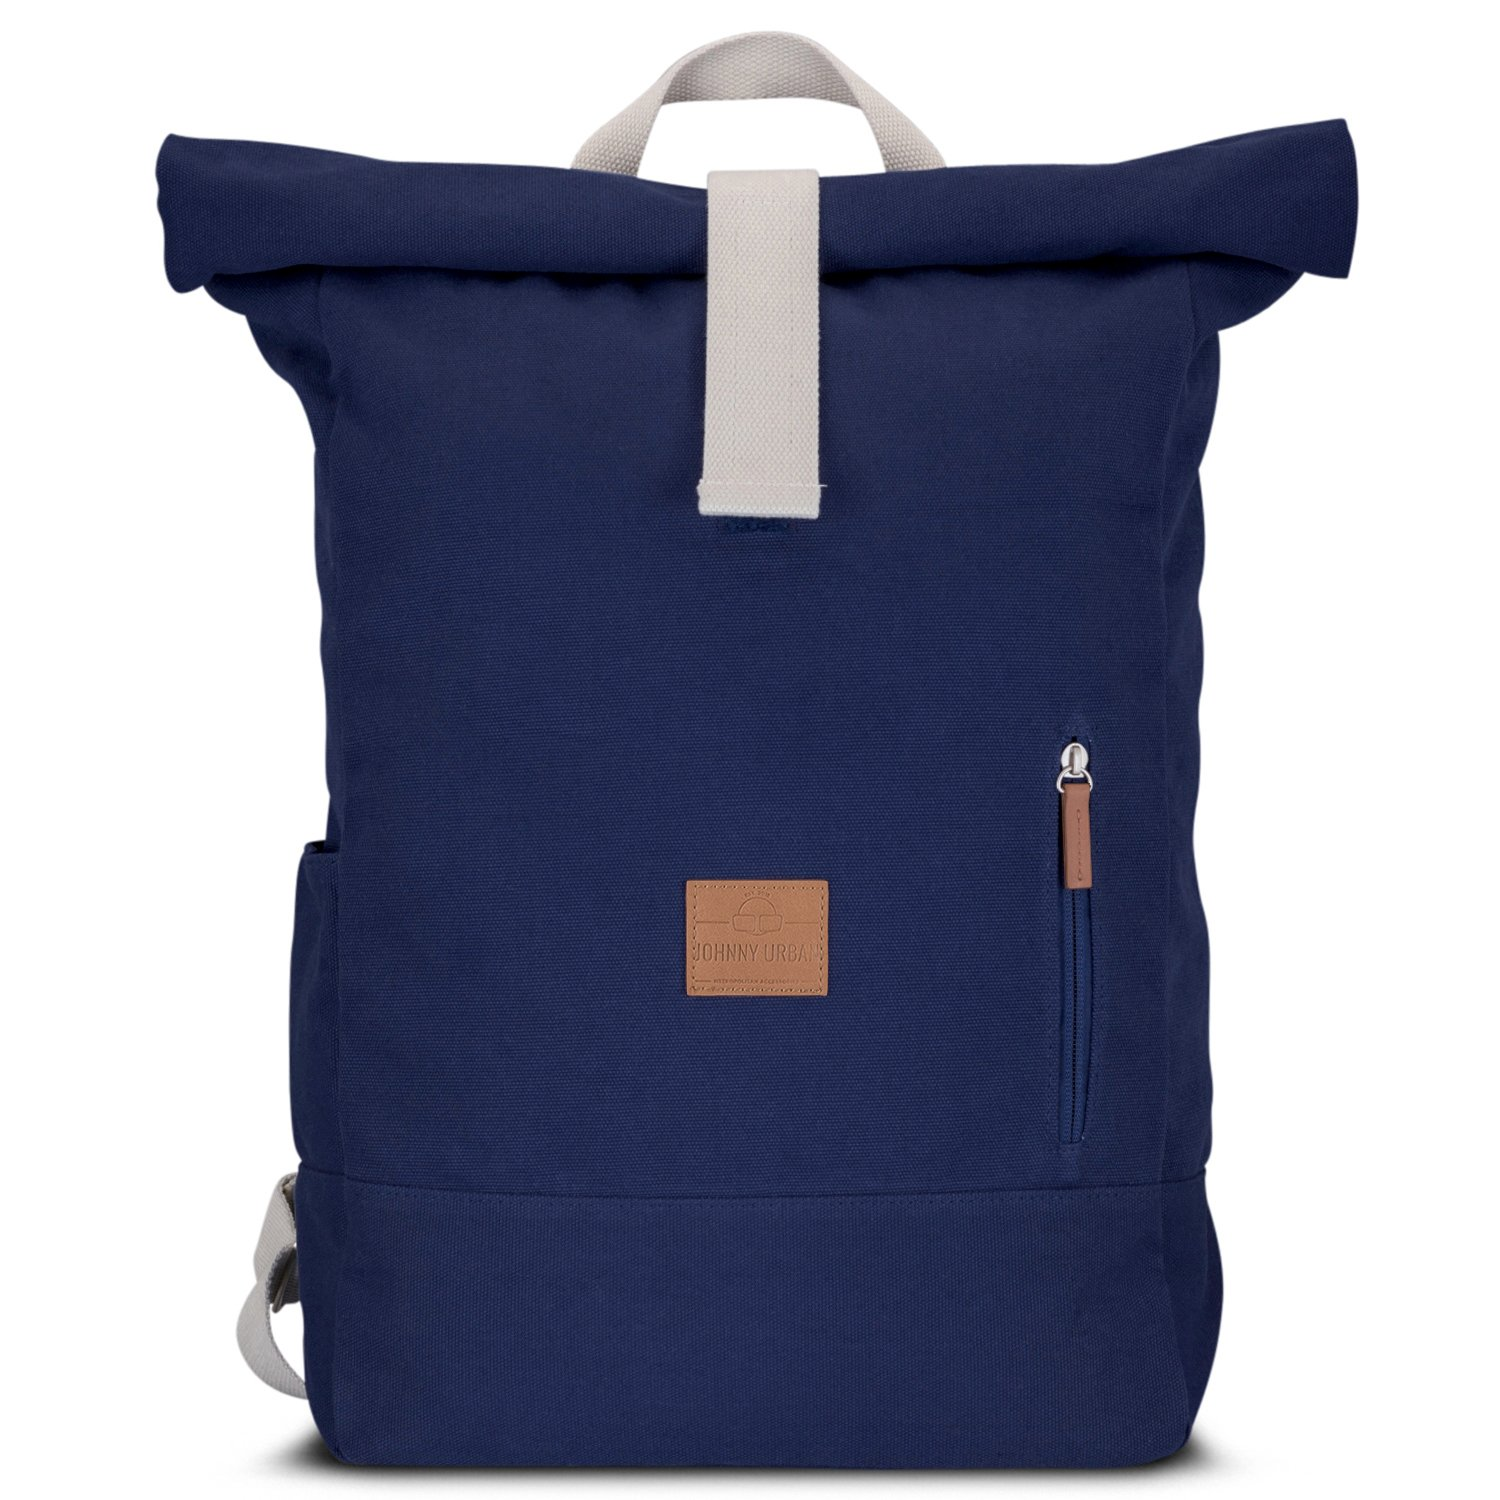 Get Quotations · Canvas Backpack Men   Women Black - JOHNNY URBAN Cotton    Vegan Leather Roll Top Daypack edafb2db2e123